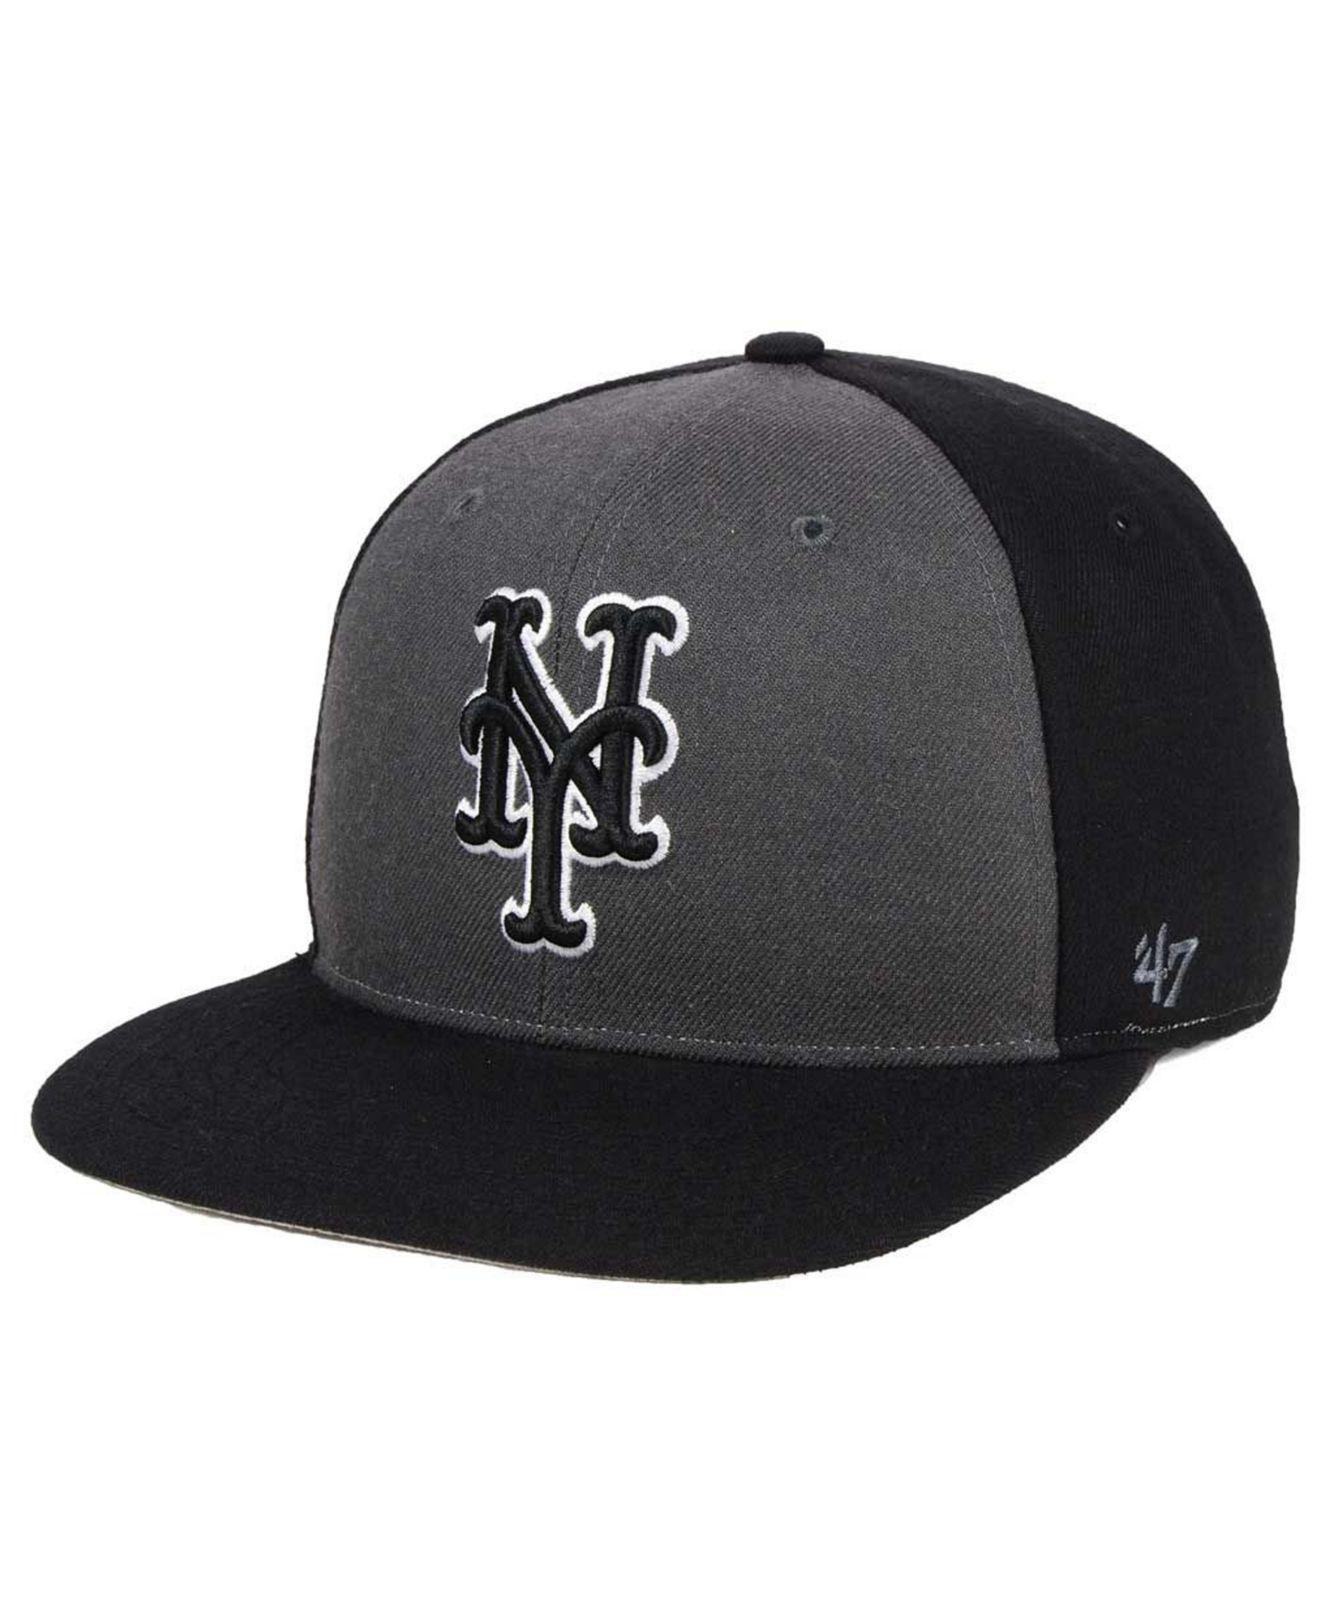 new product 31aaa 3ea0a Lyst - 47 Brand Black Sure Shot Accent Snapback Cap in Black for Men